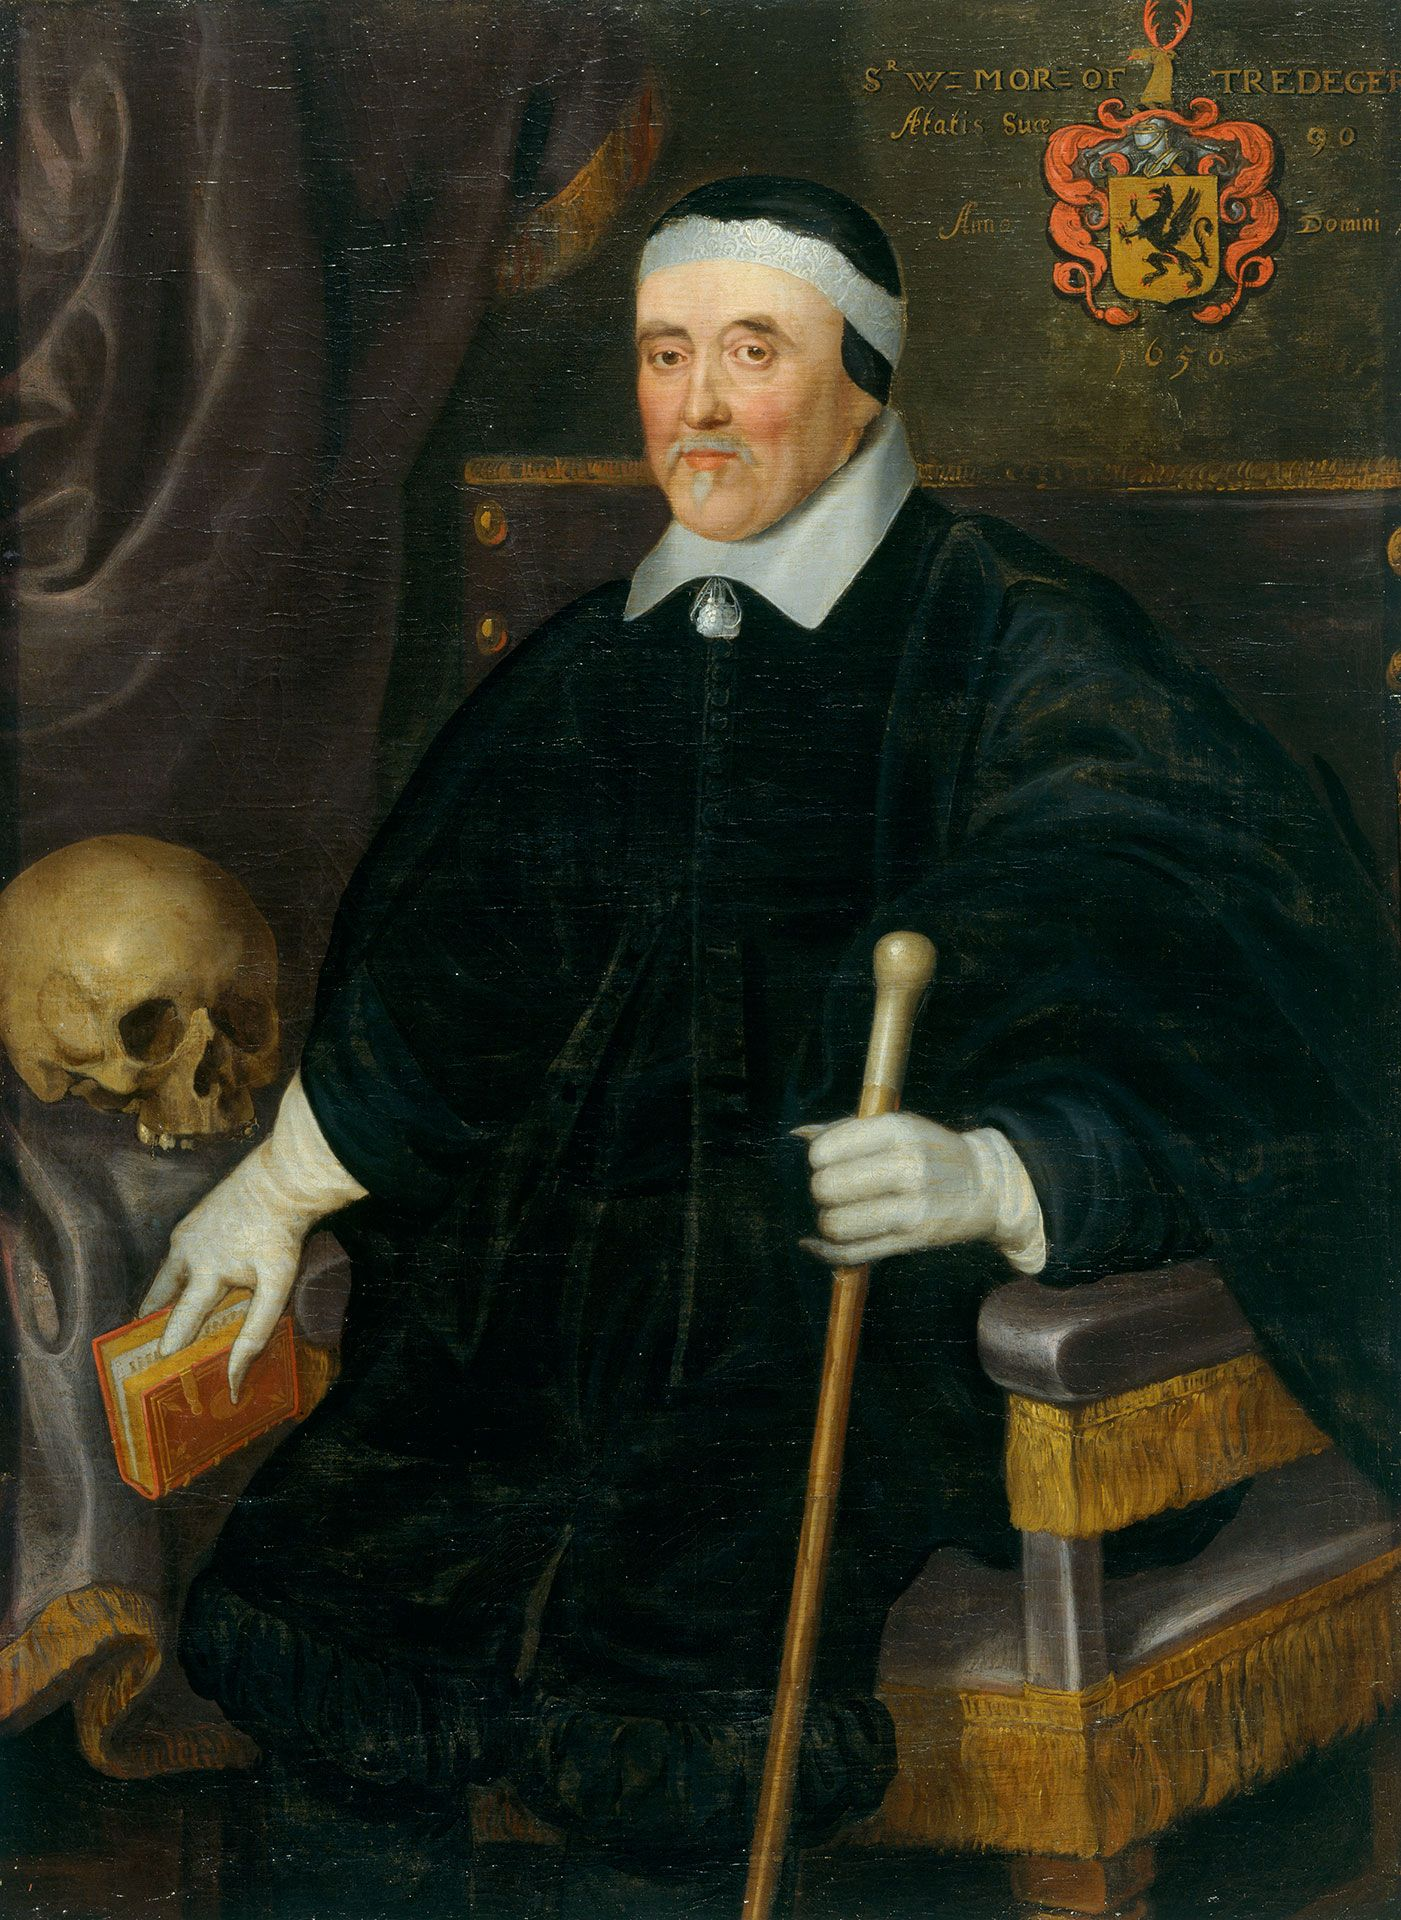 Syr William Morgan (1540-1653)